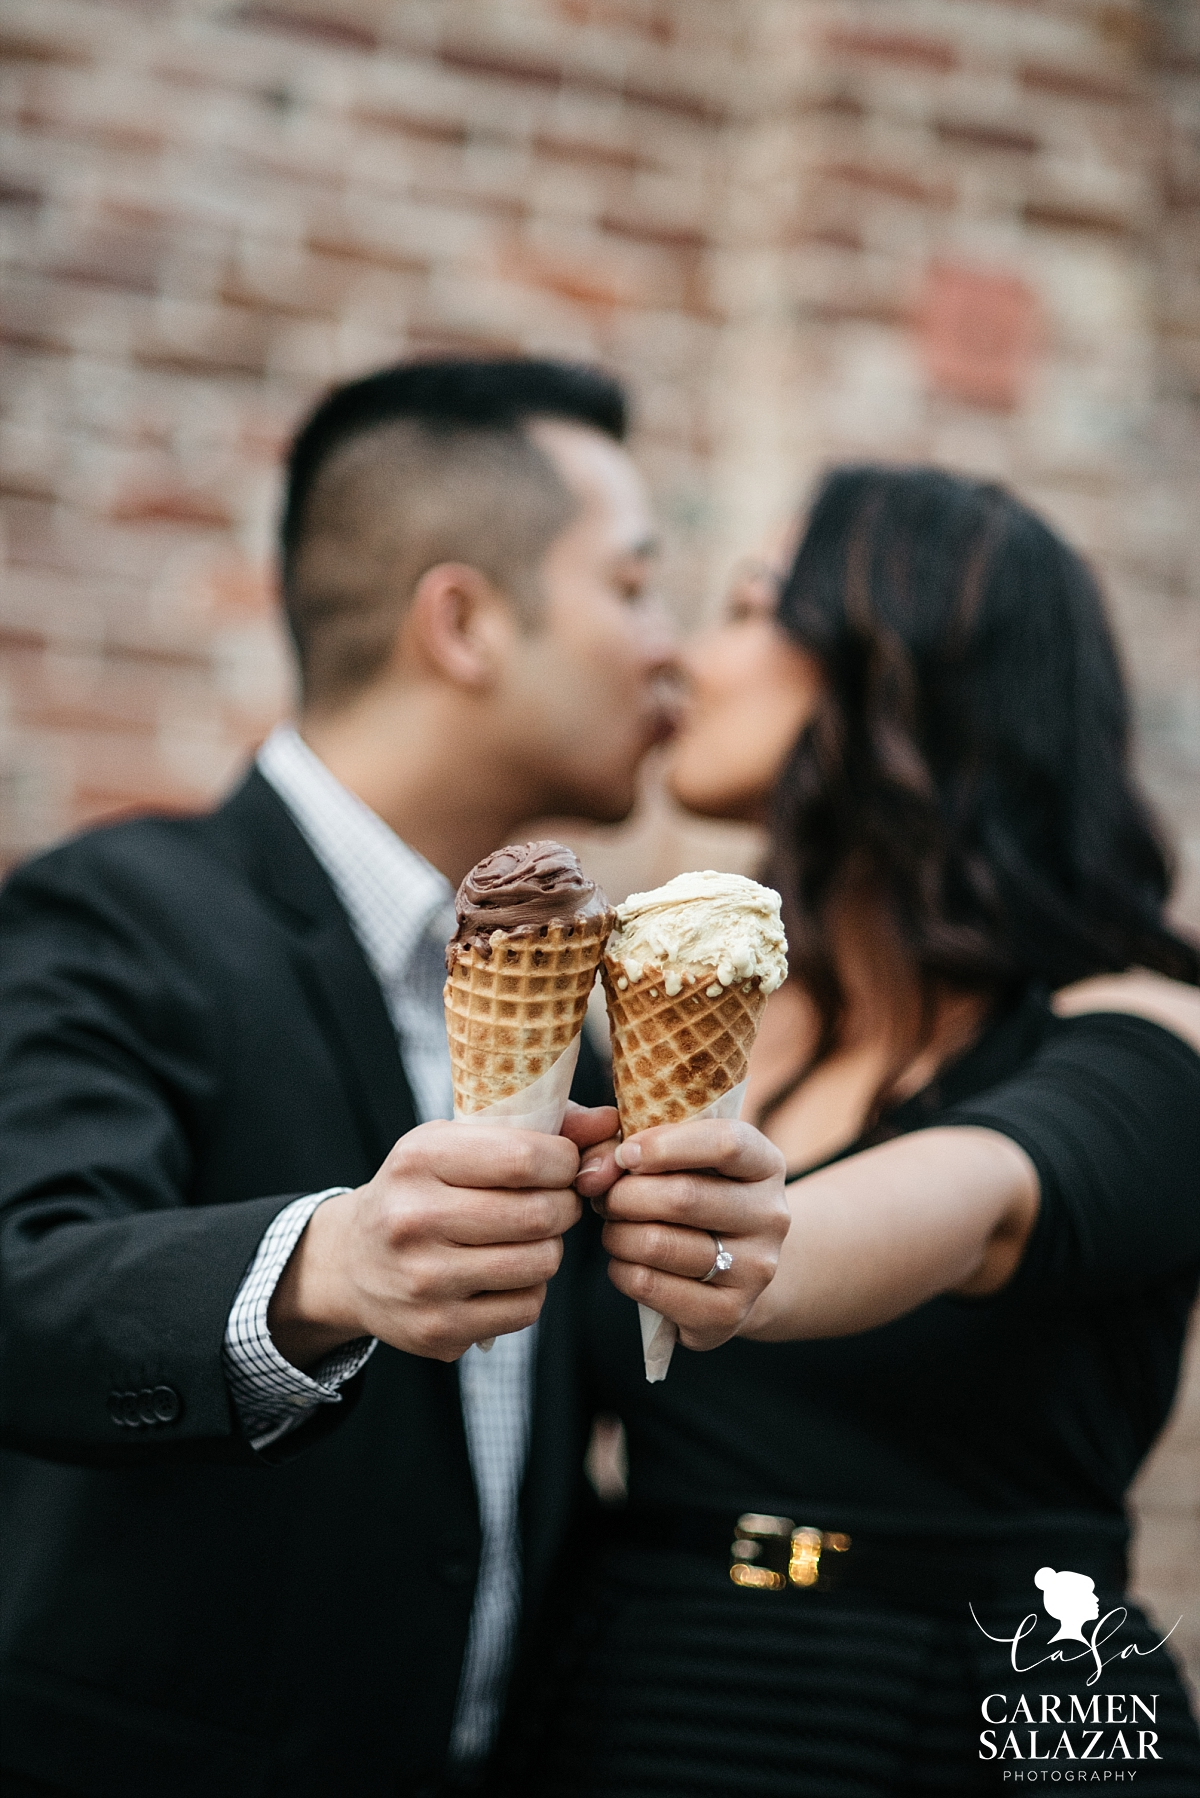 Gelato lovers engagement photography - Carmen Salazar